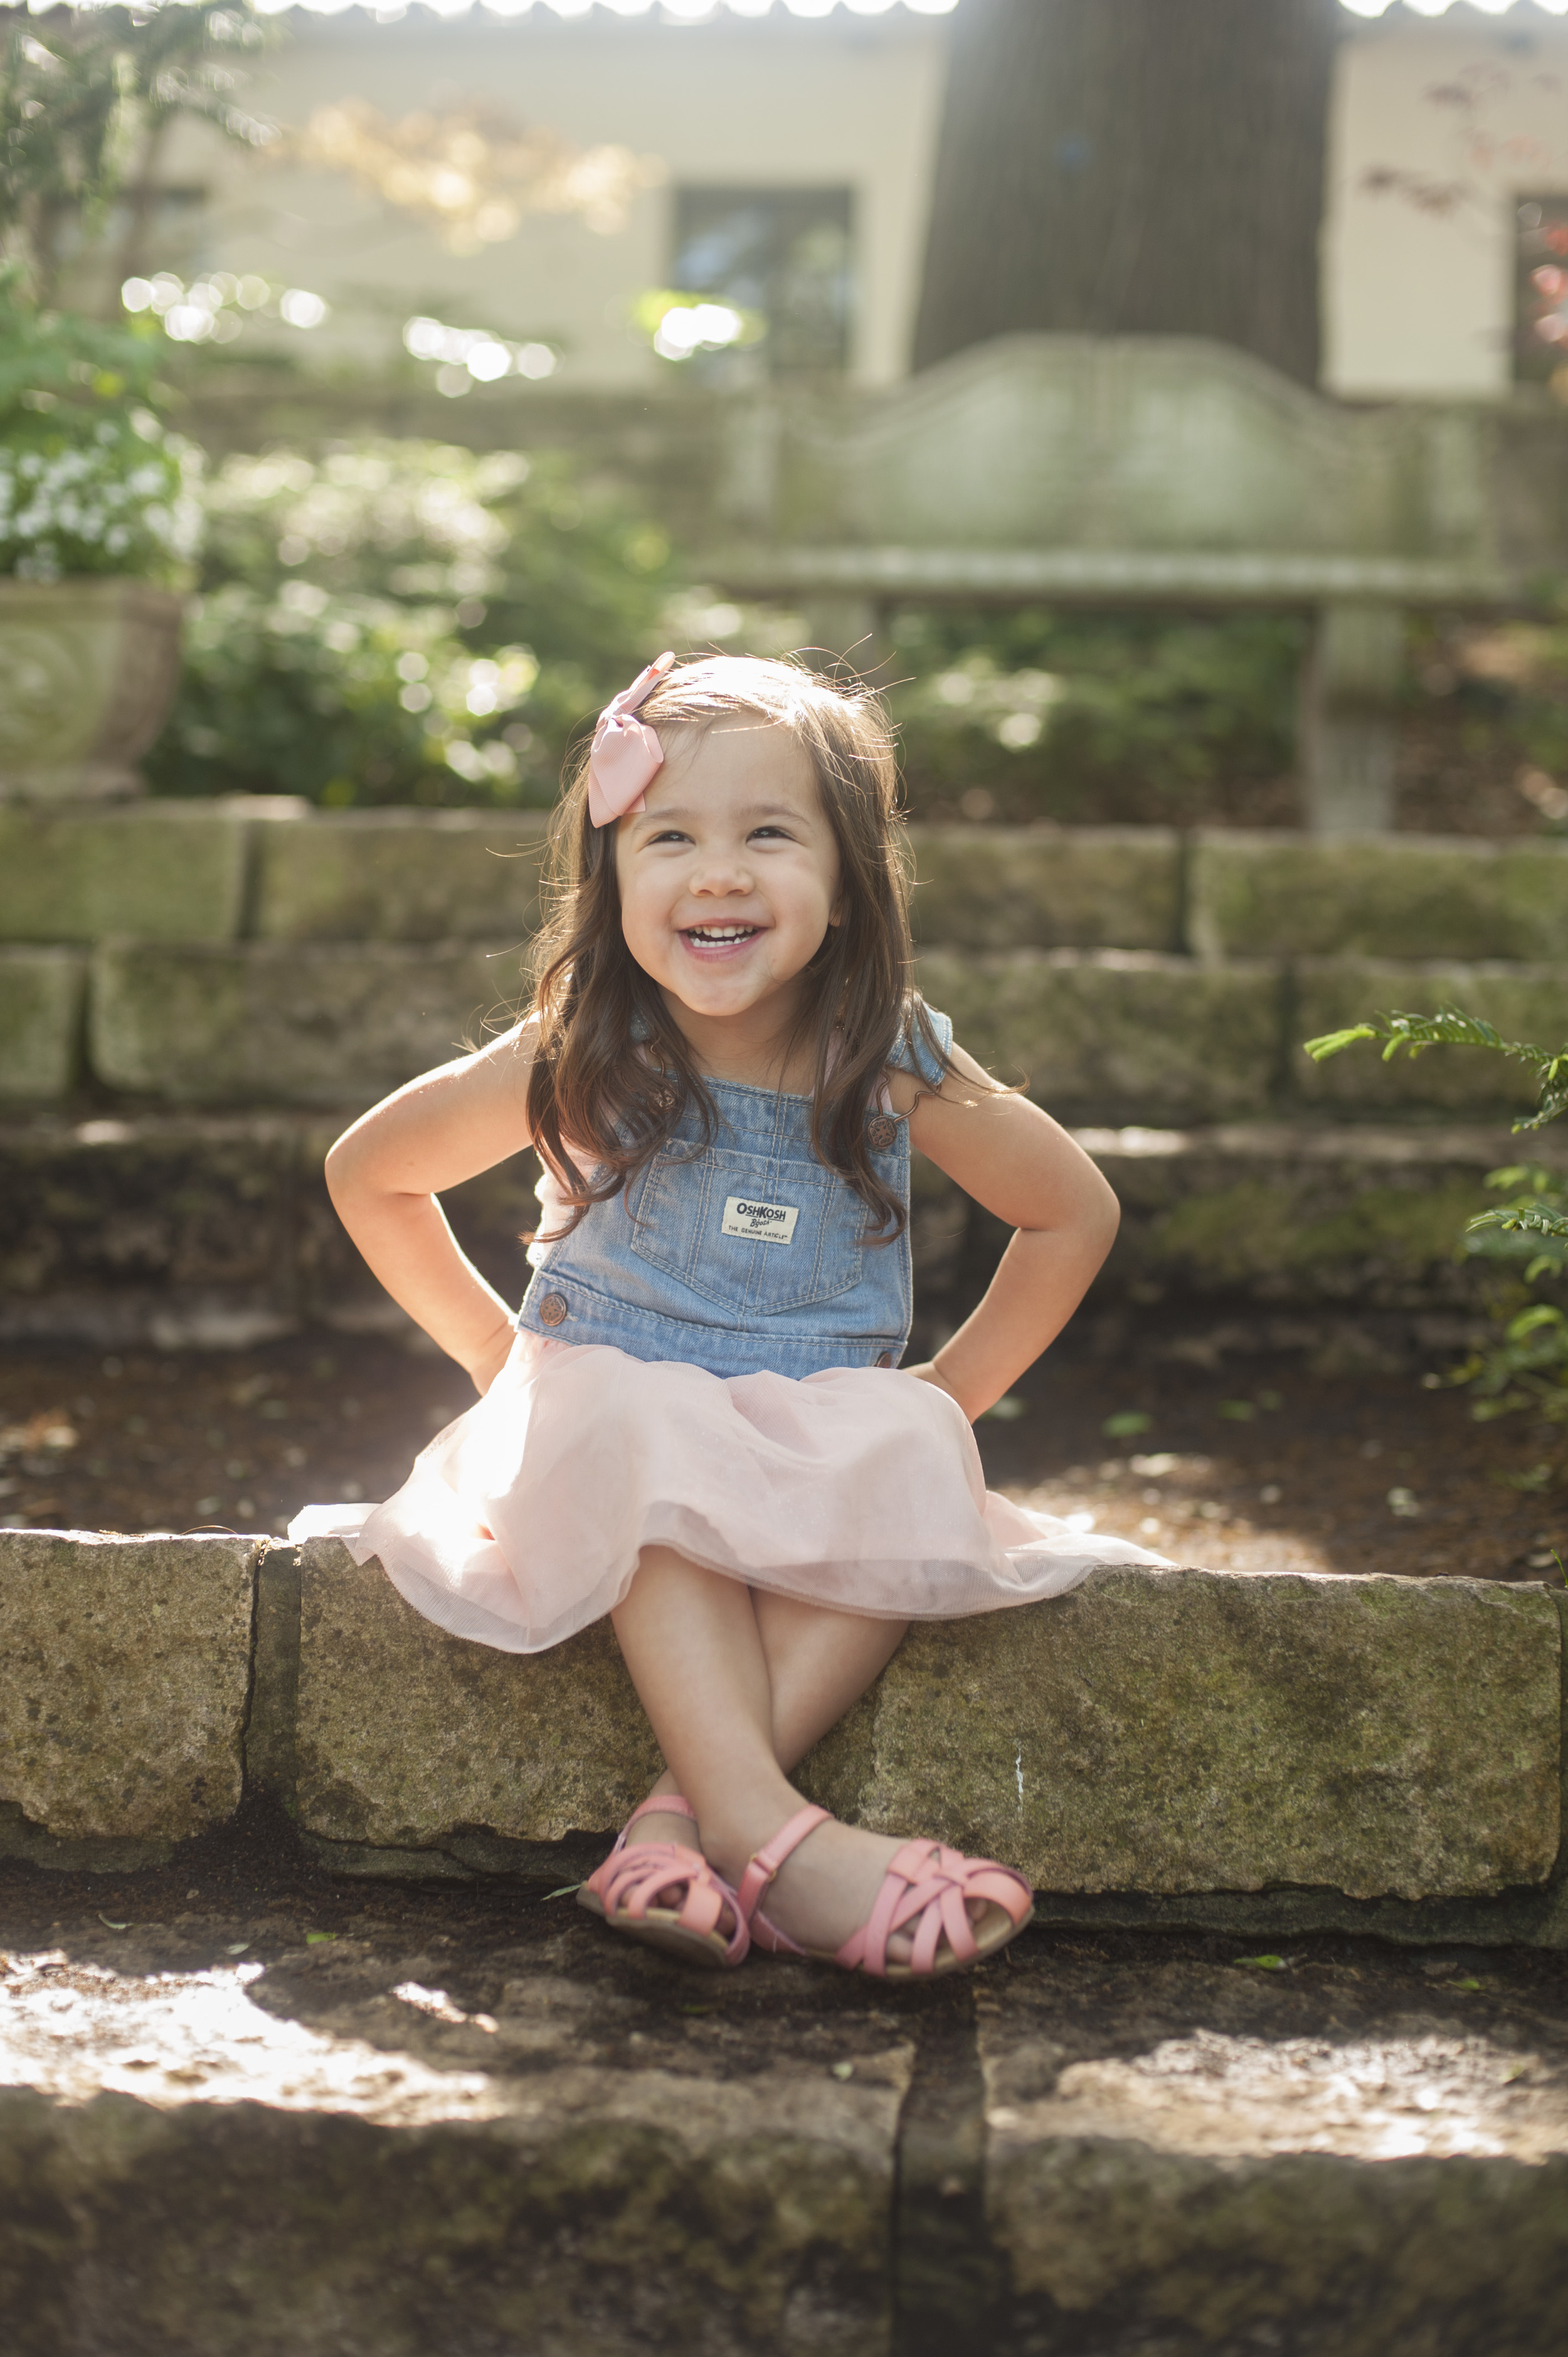 Sassy toddler sitting on stone steps. Childrens portrait at the Dallas Arboretum.